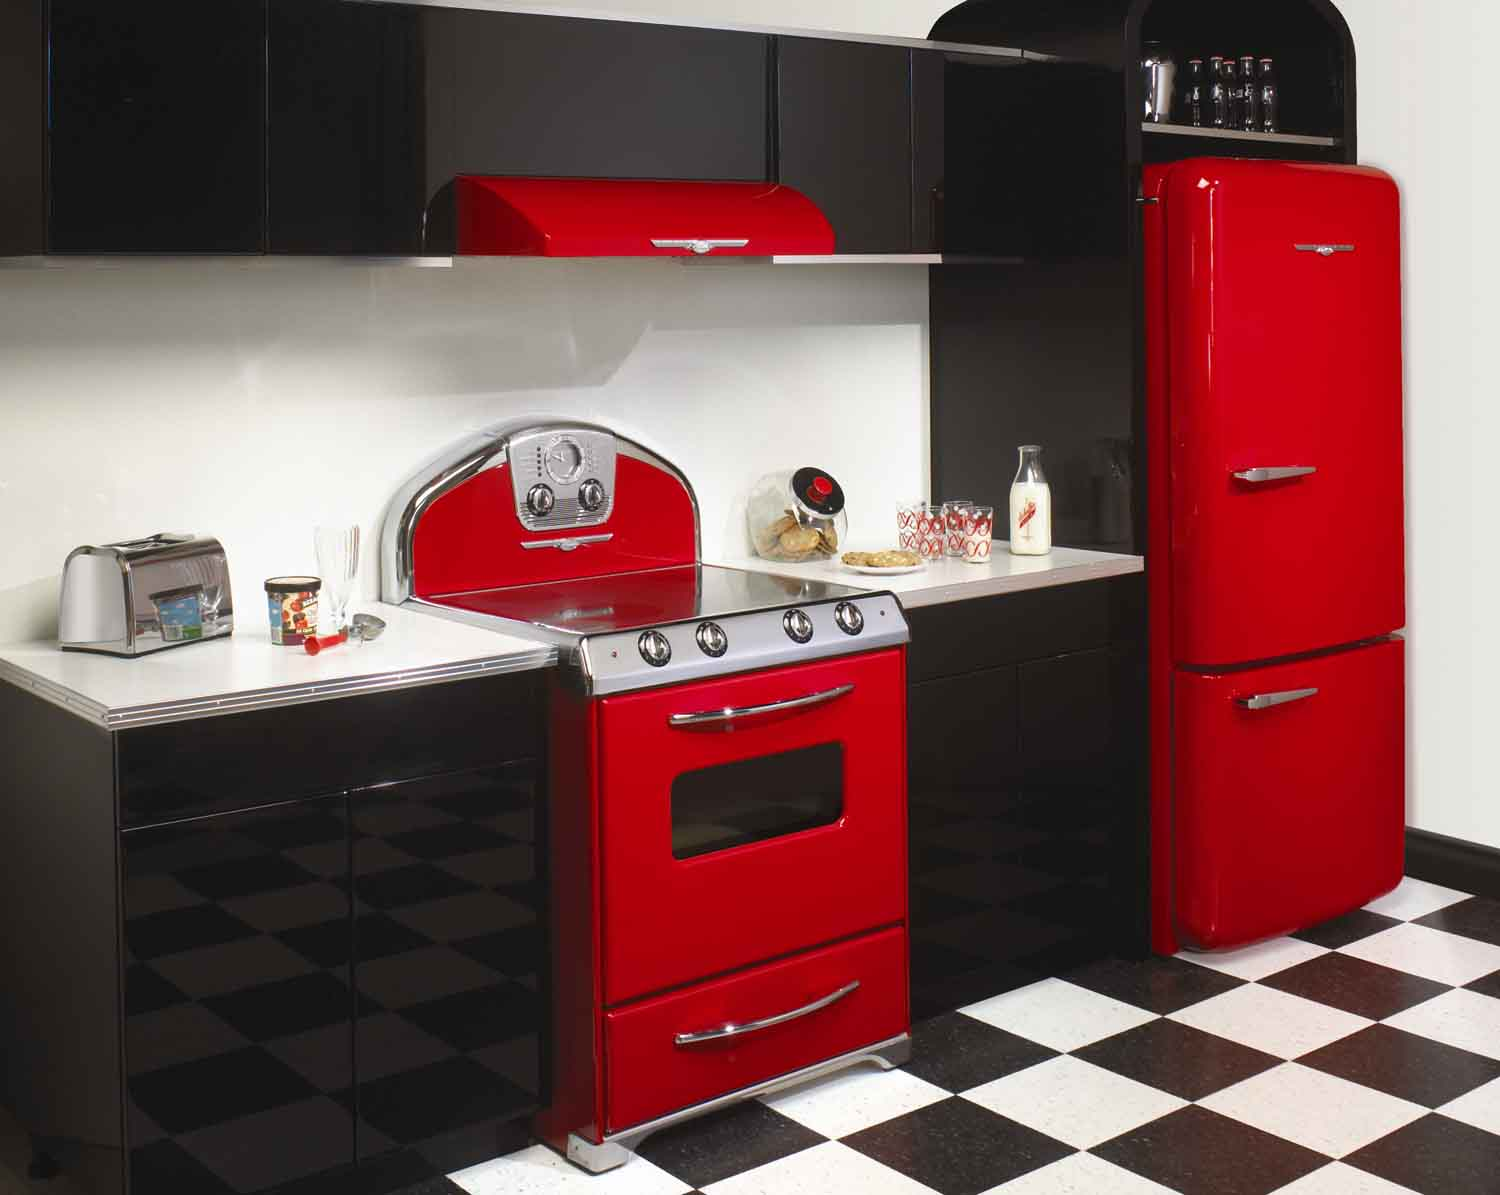 The Fifties Kitchen - Home Interior Design Ideas